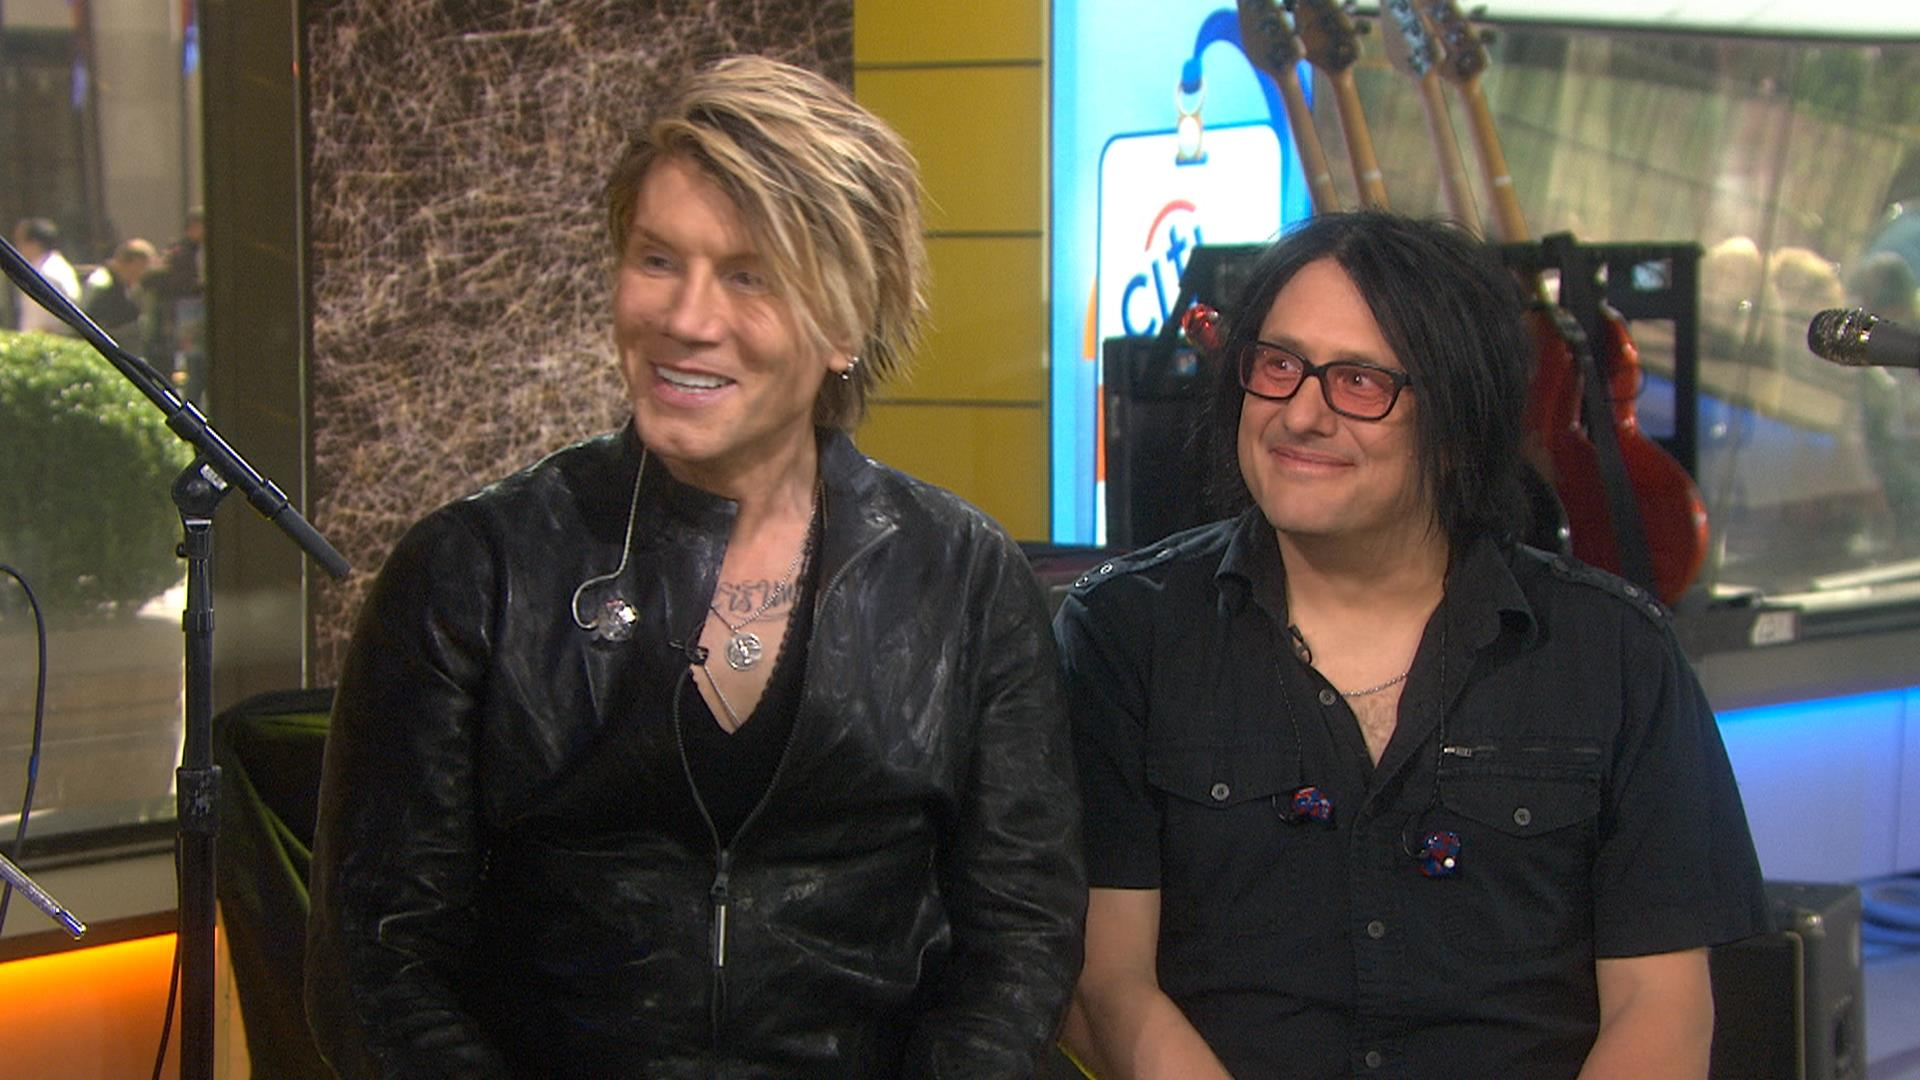 Goo Goo Dolls on lasting success: 'We thought we would last 3 months'